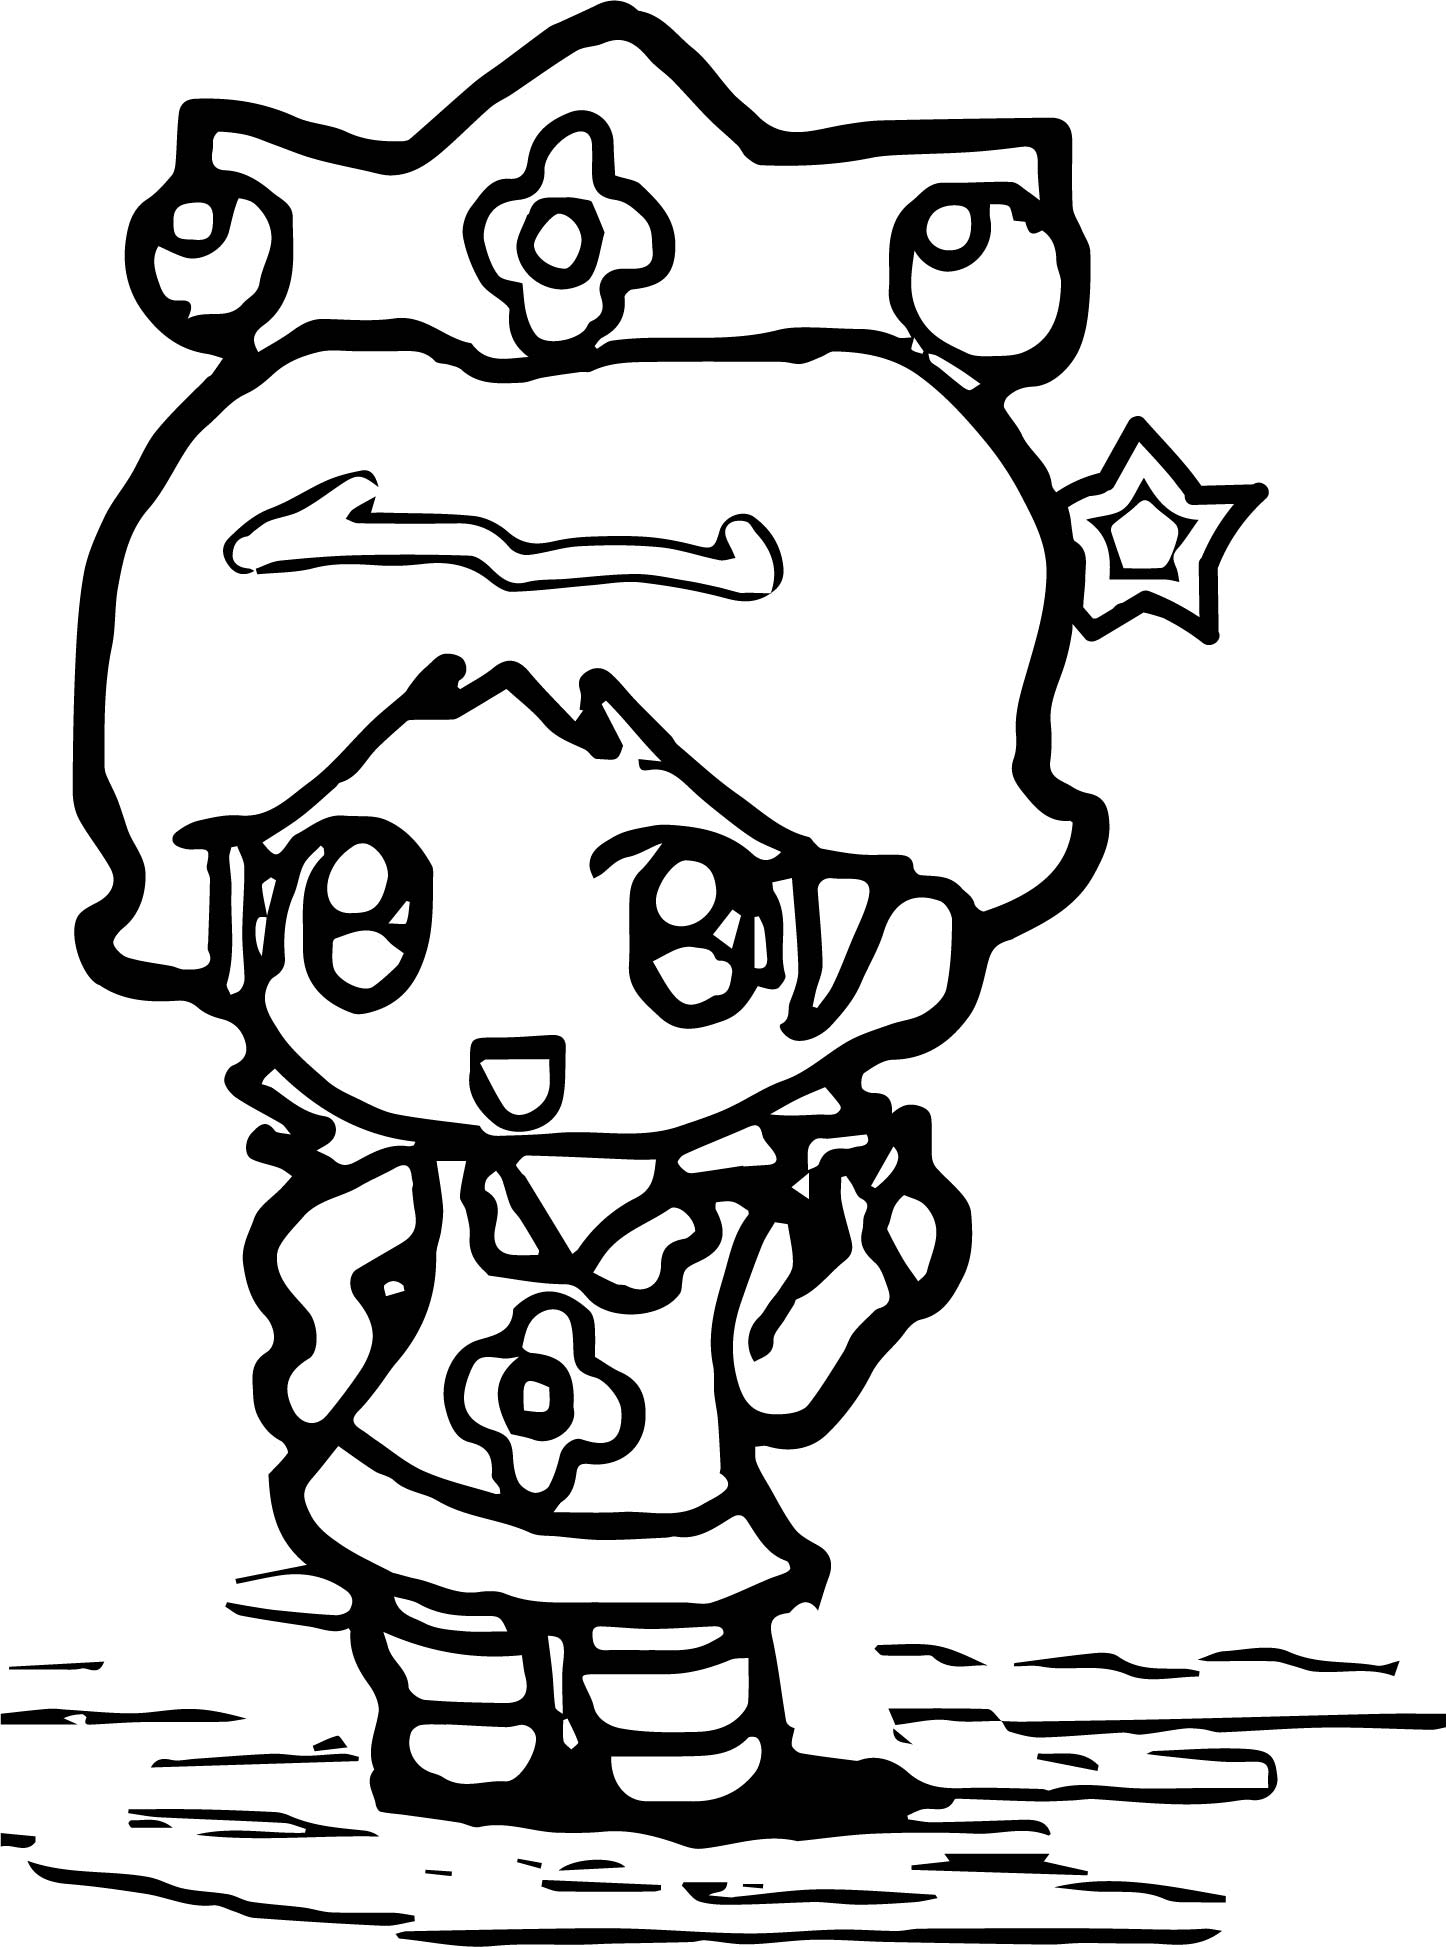 Star Baby Daisy Coloring Page